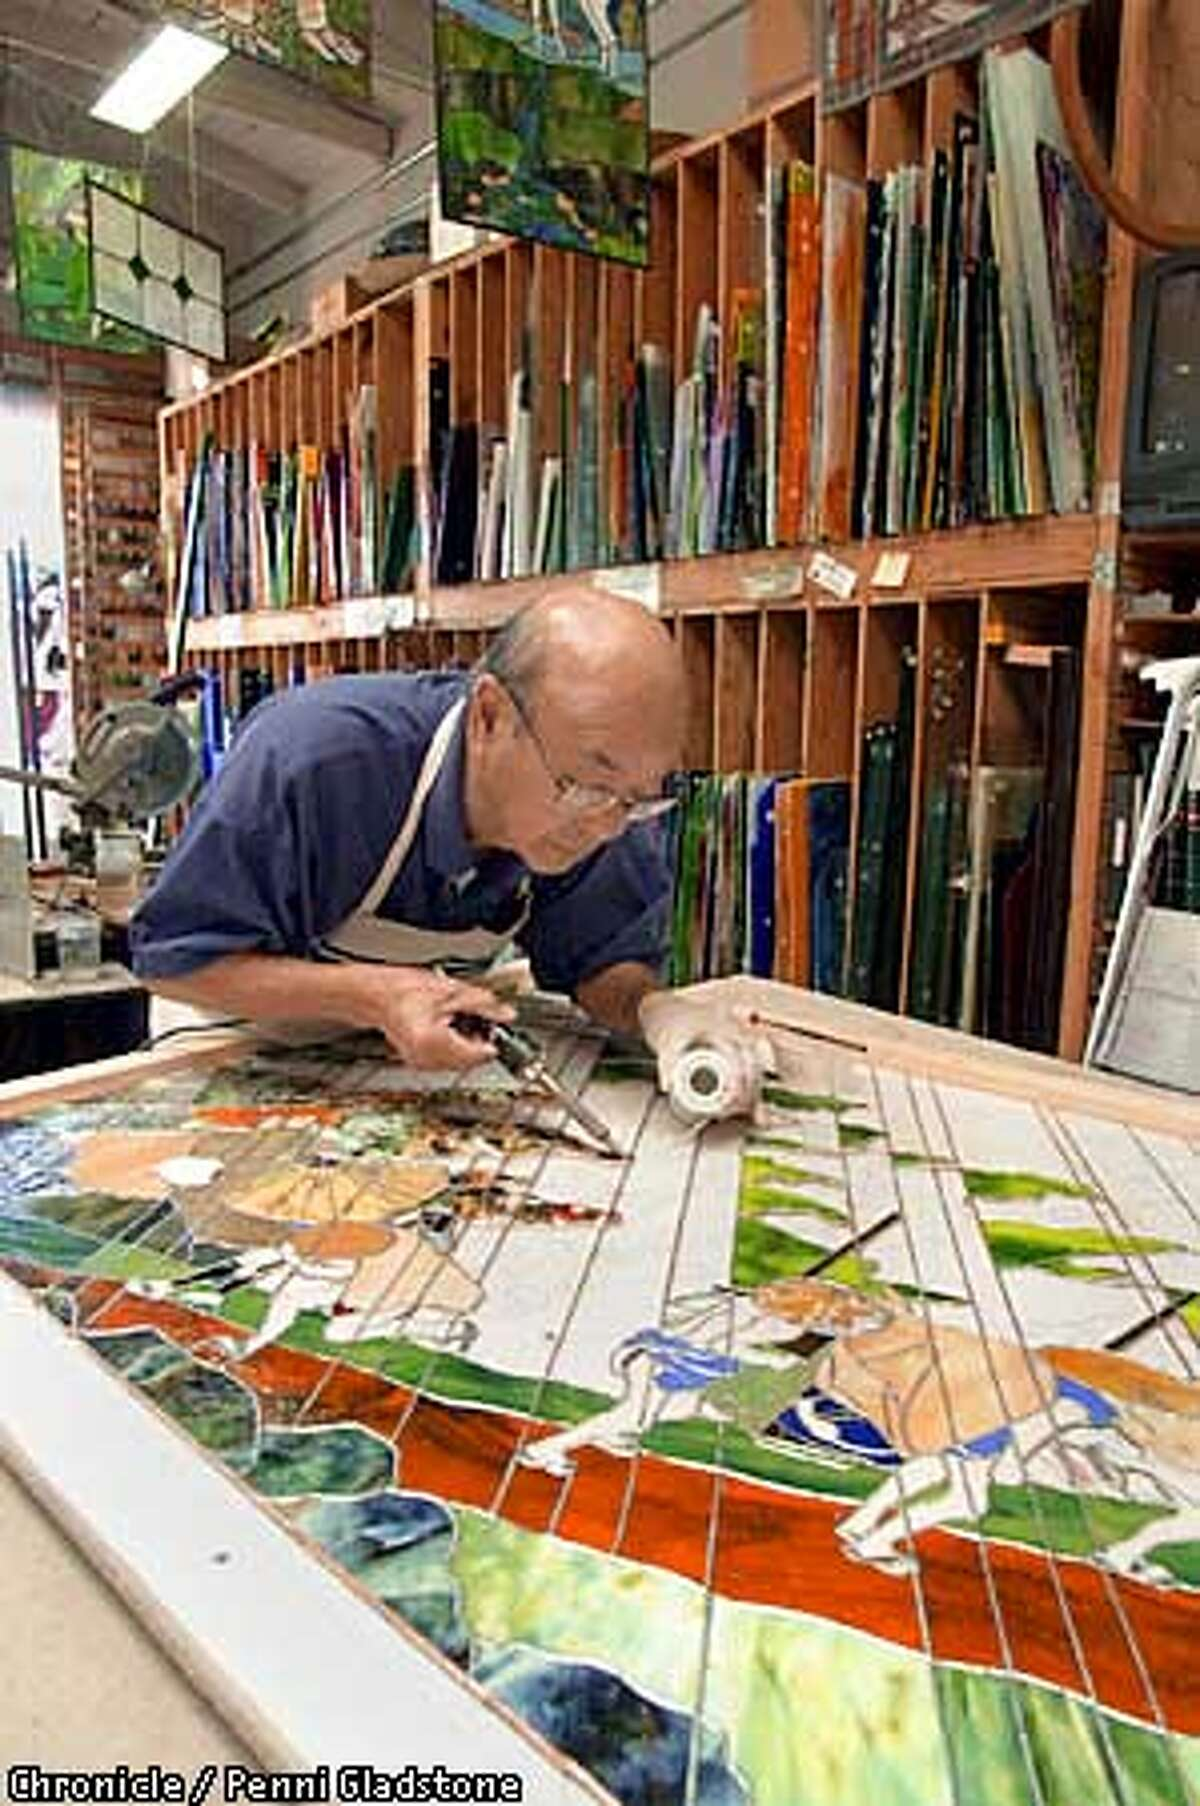 """Aanraku, stained glass studio in San Mateo. Profiled is """"Grandpa,'' Yoshinori Yakao a 79-year-old Japanese cook and swordsman,who started taking classes three years ago and now has a national reputation. CHRONICLE PHOTO BY PENNI GLADSTONE"""